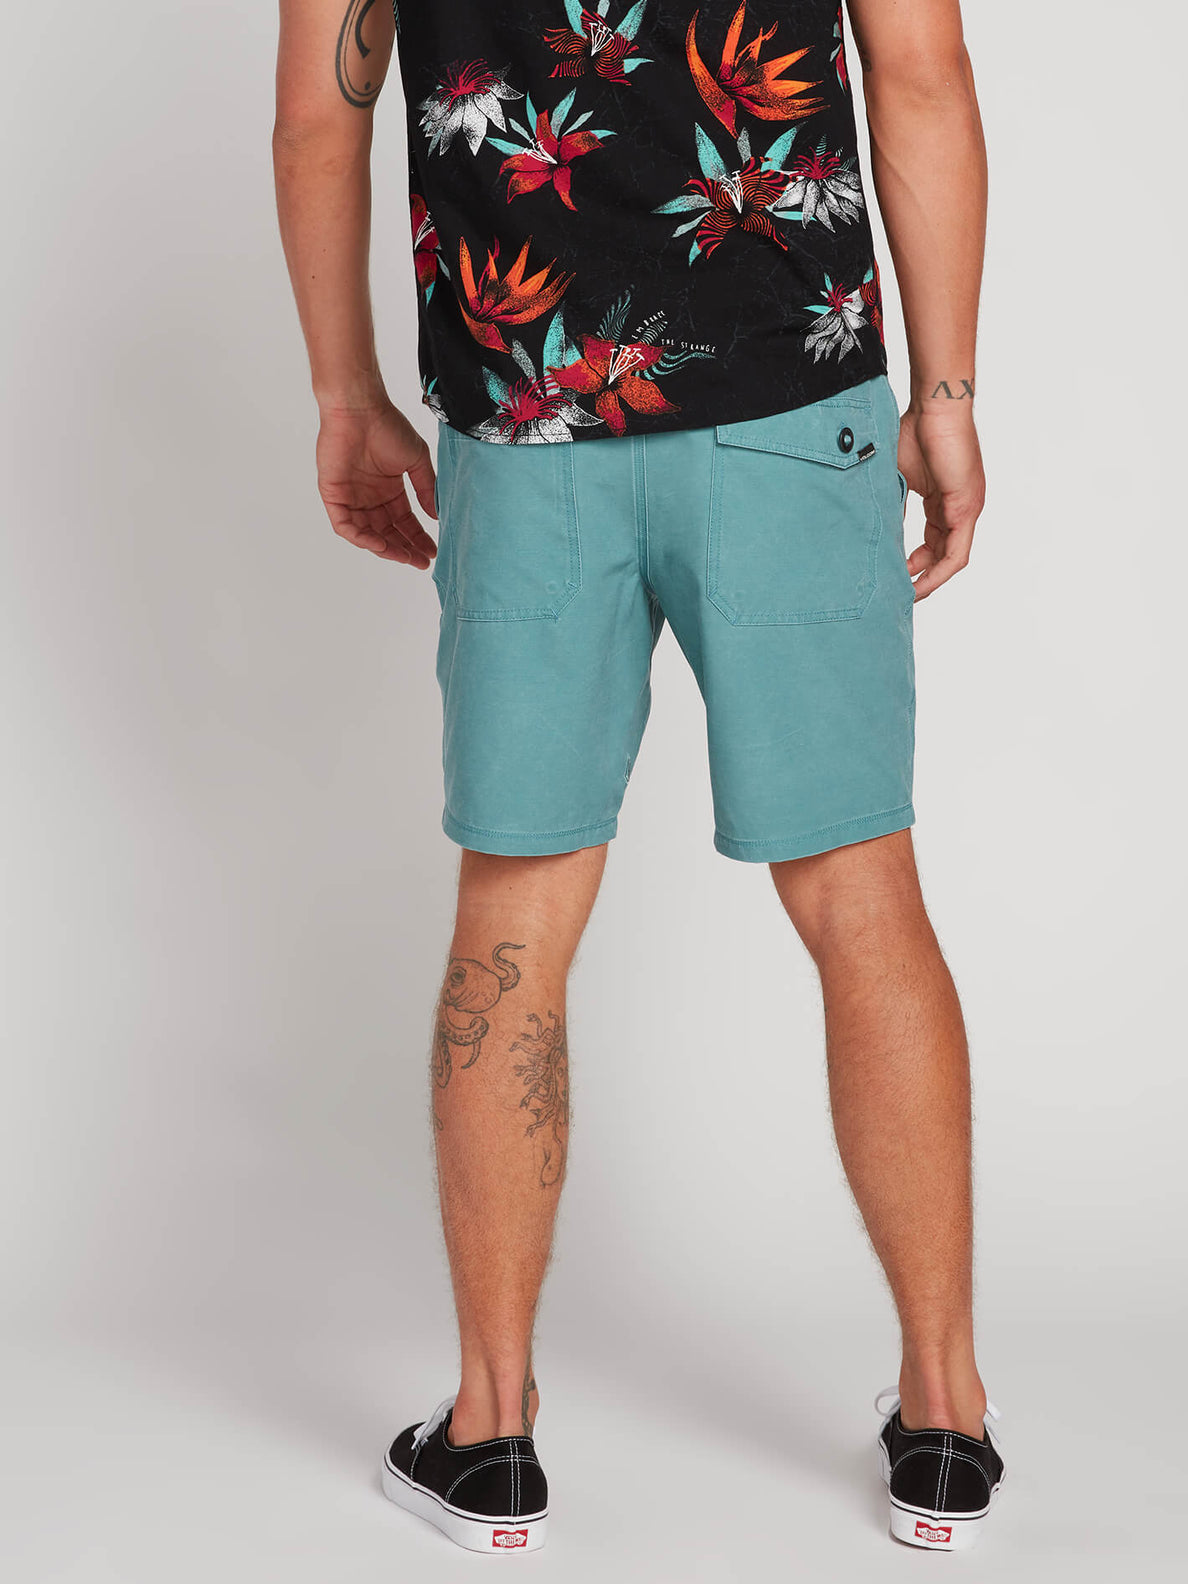 Surf N' Turf Faded Hybrid Shorts - Agave (A3211903_AGV) [2]